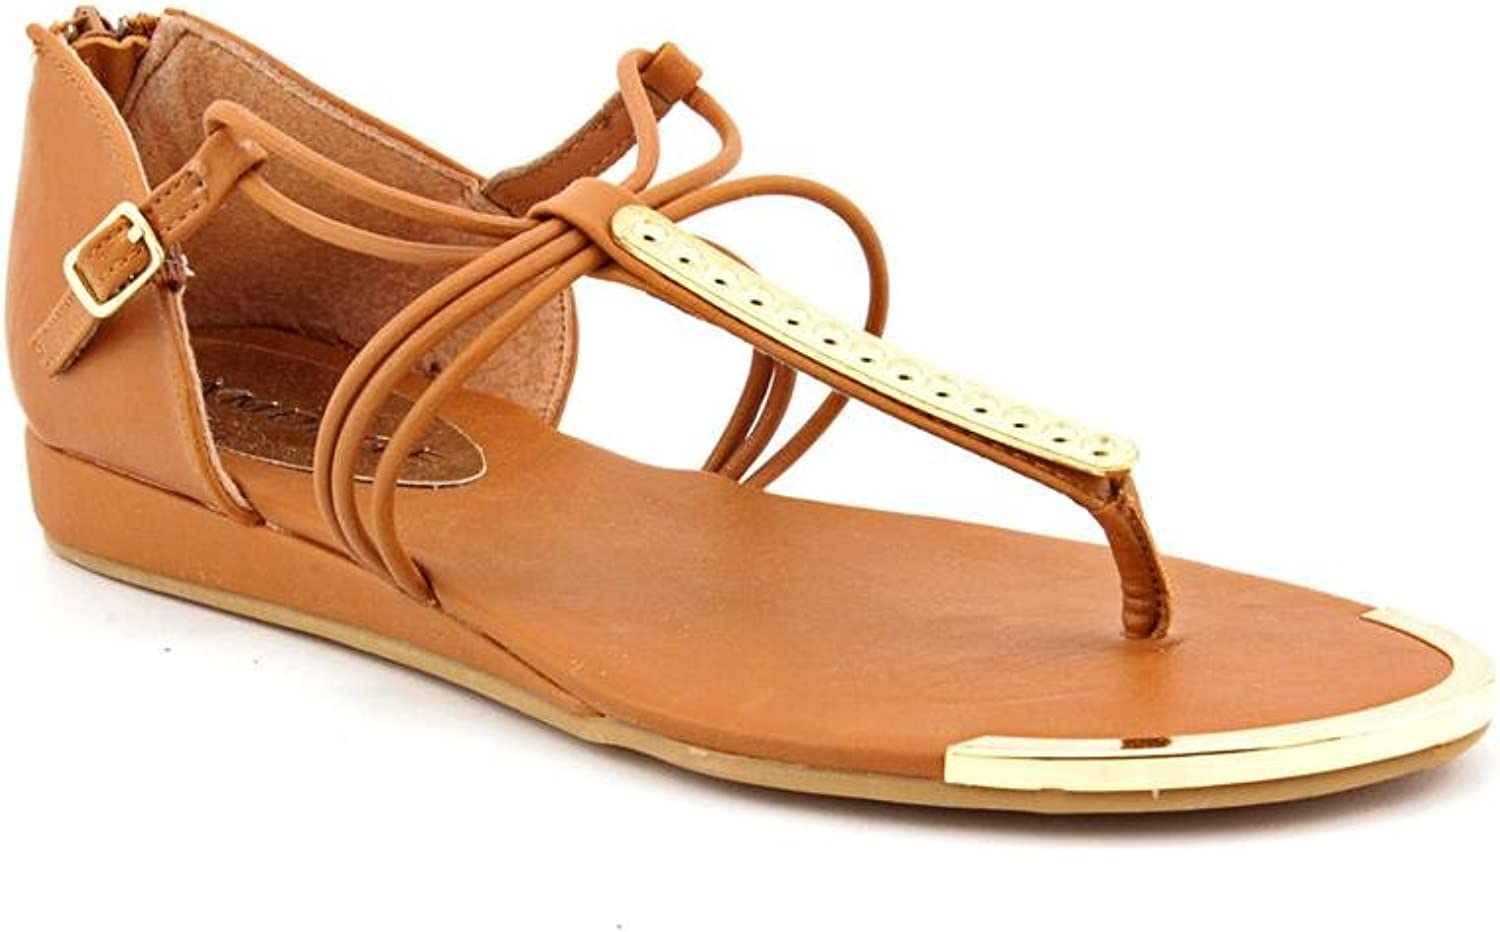 Rampage Saphire Womens 6.5 Brown Faux Leather Thongs Sandals shoes